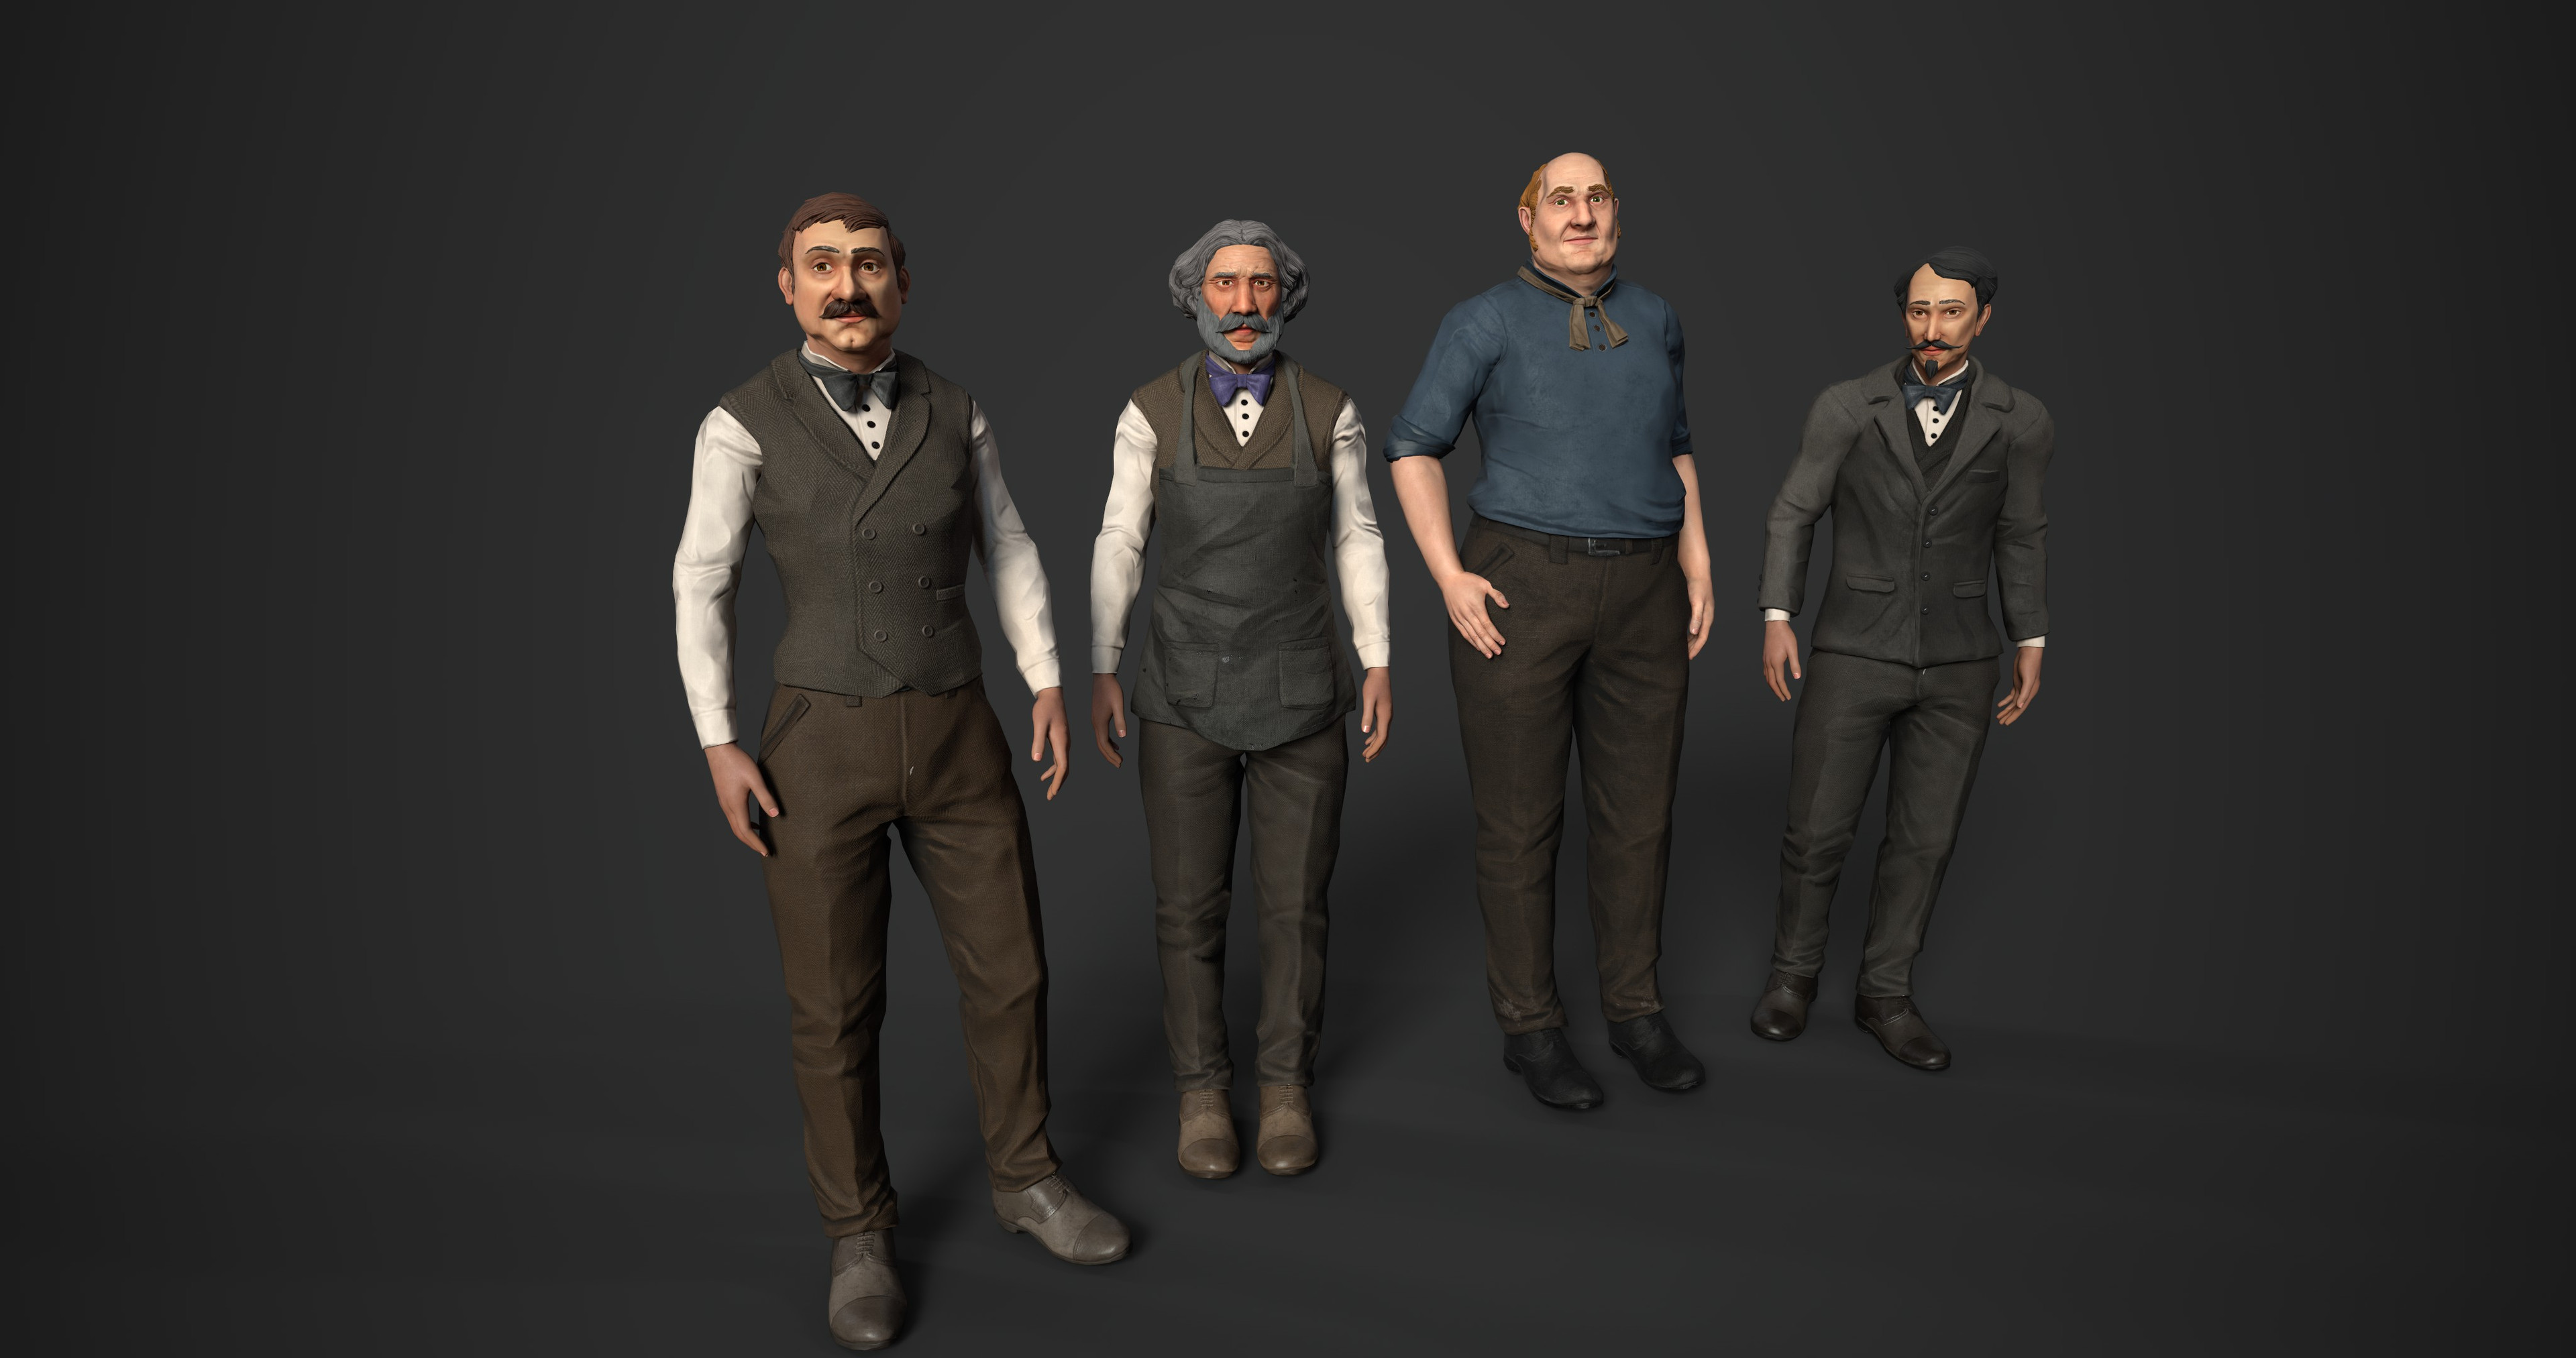 Historical characters and workers